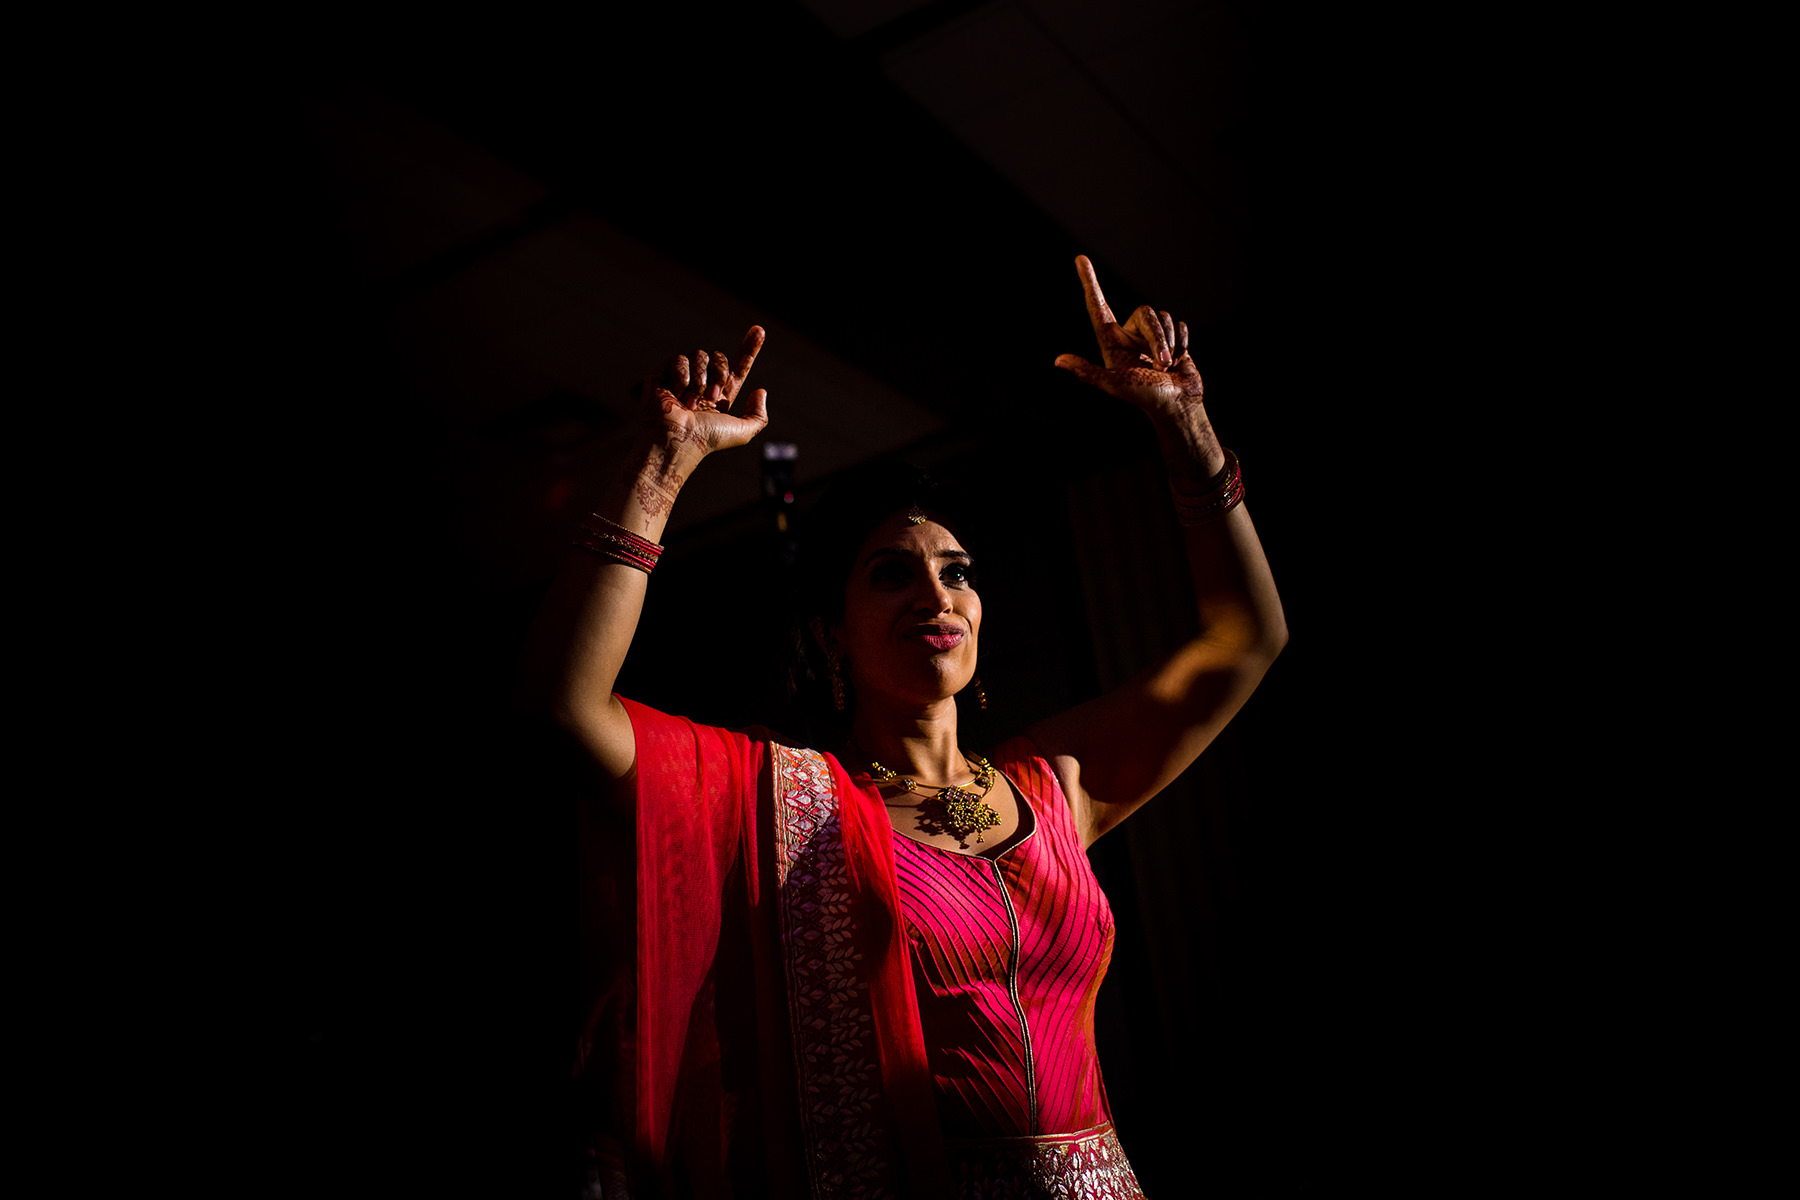 bride dancing in wedding sari